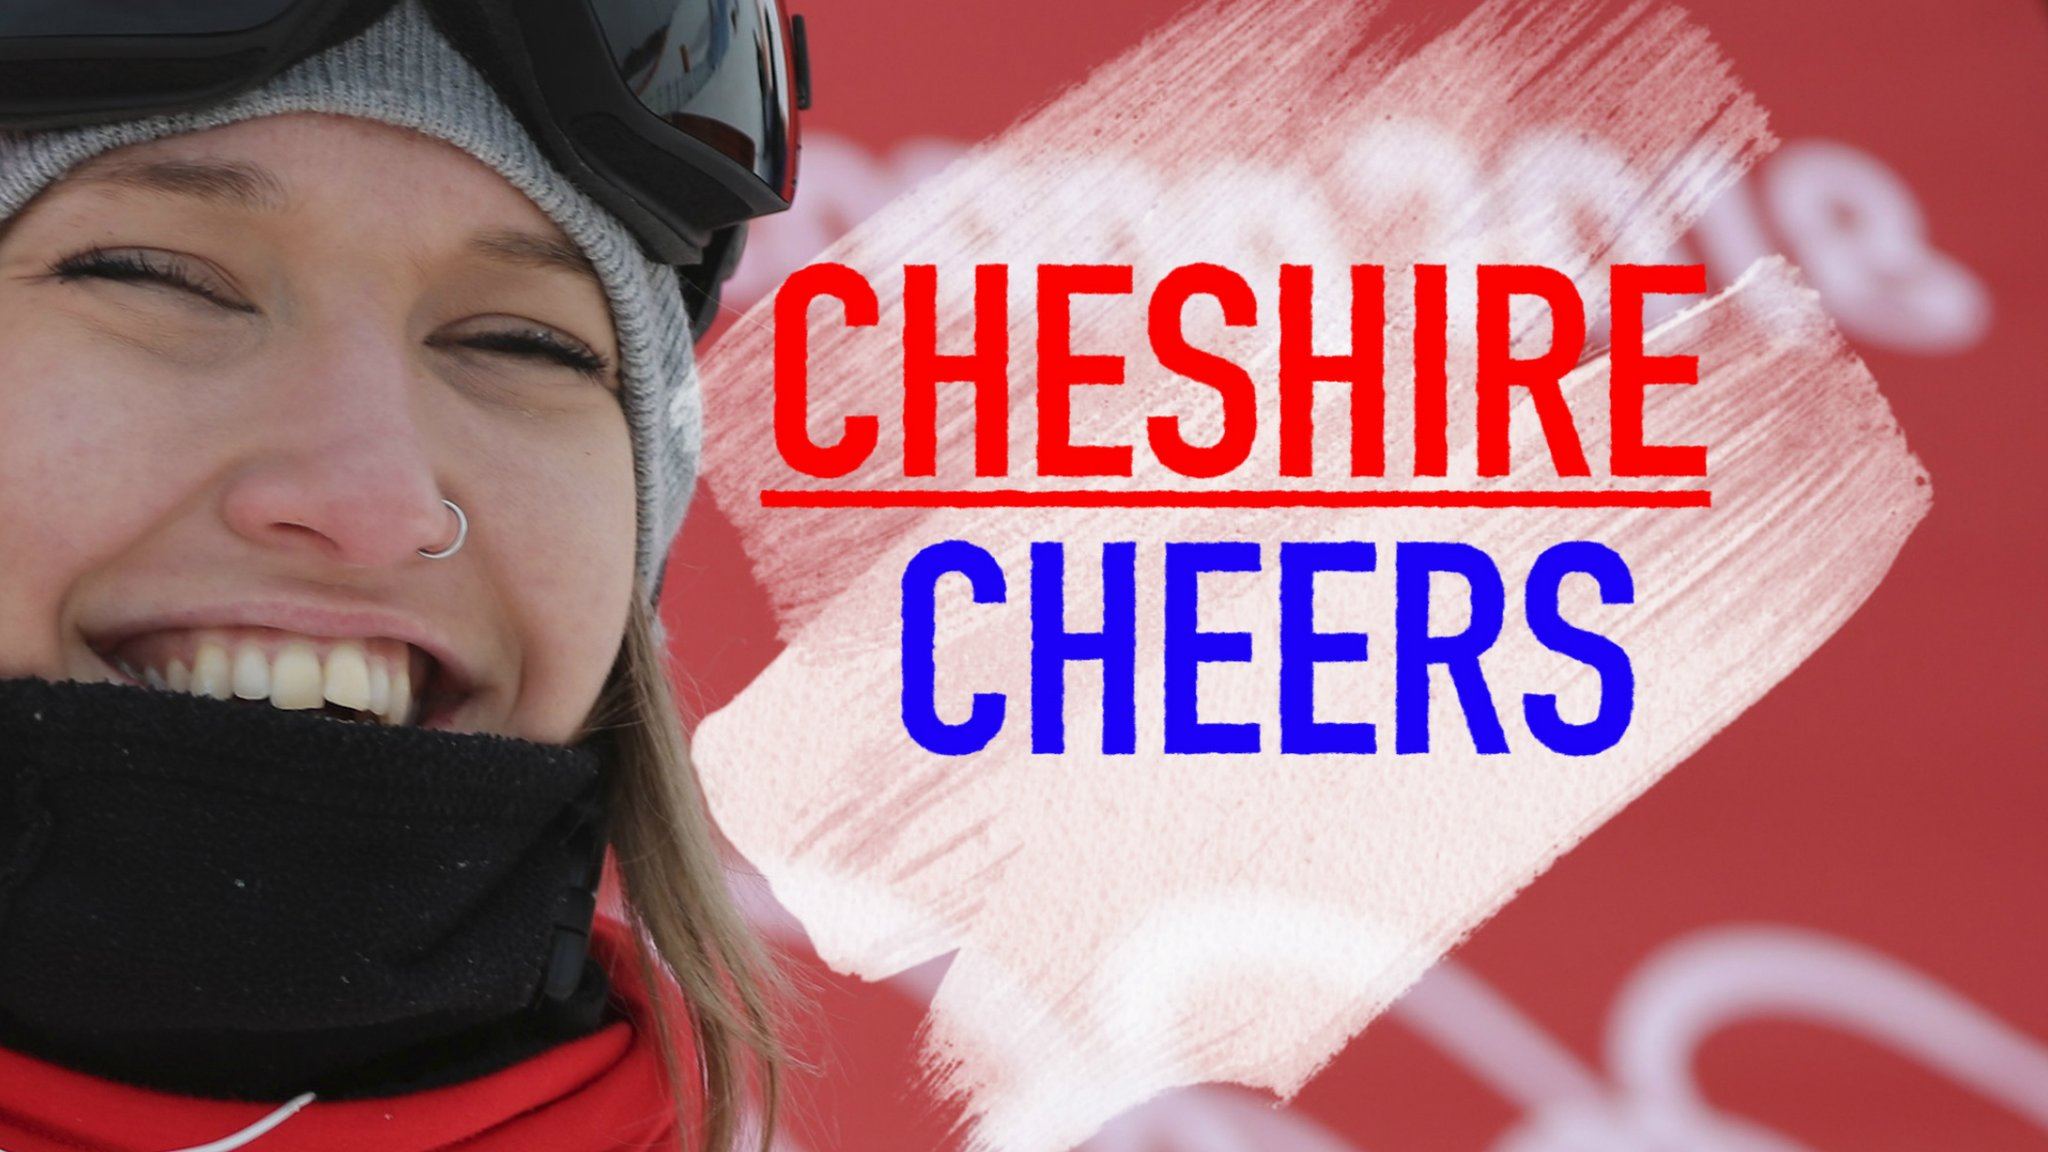 Winter Olympics: GB's Rowan Cheshire through to ski halfpipe final